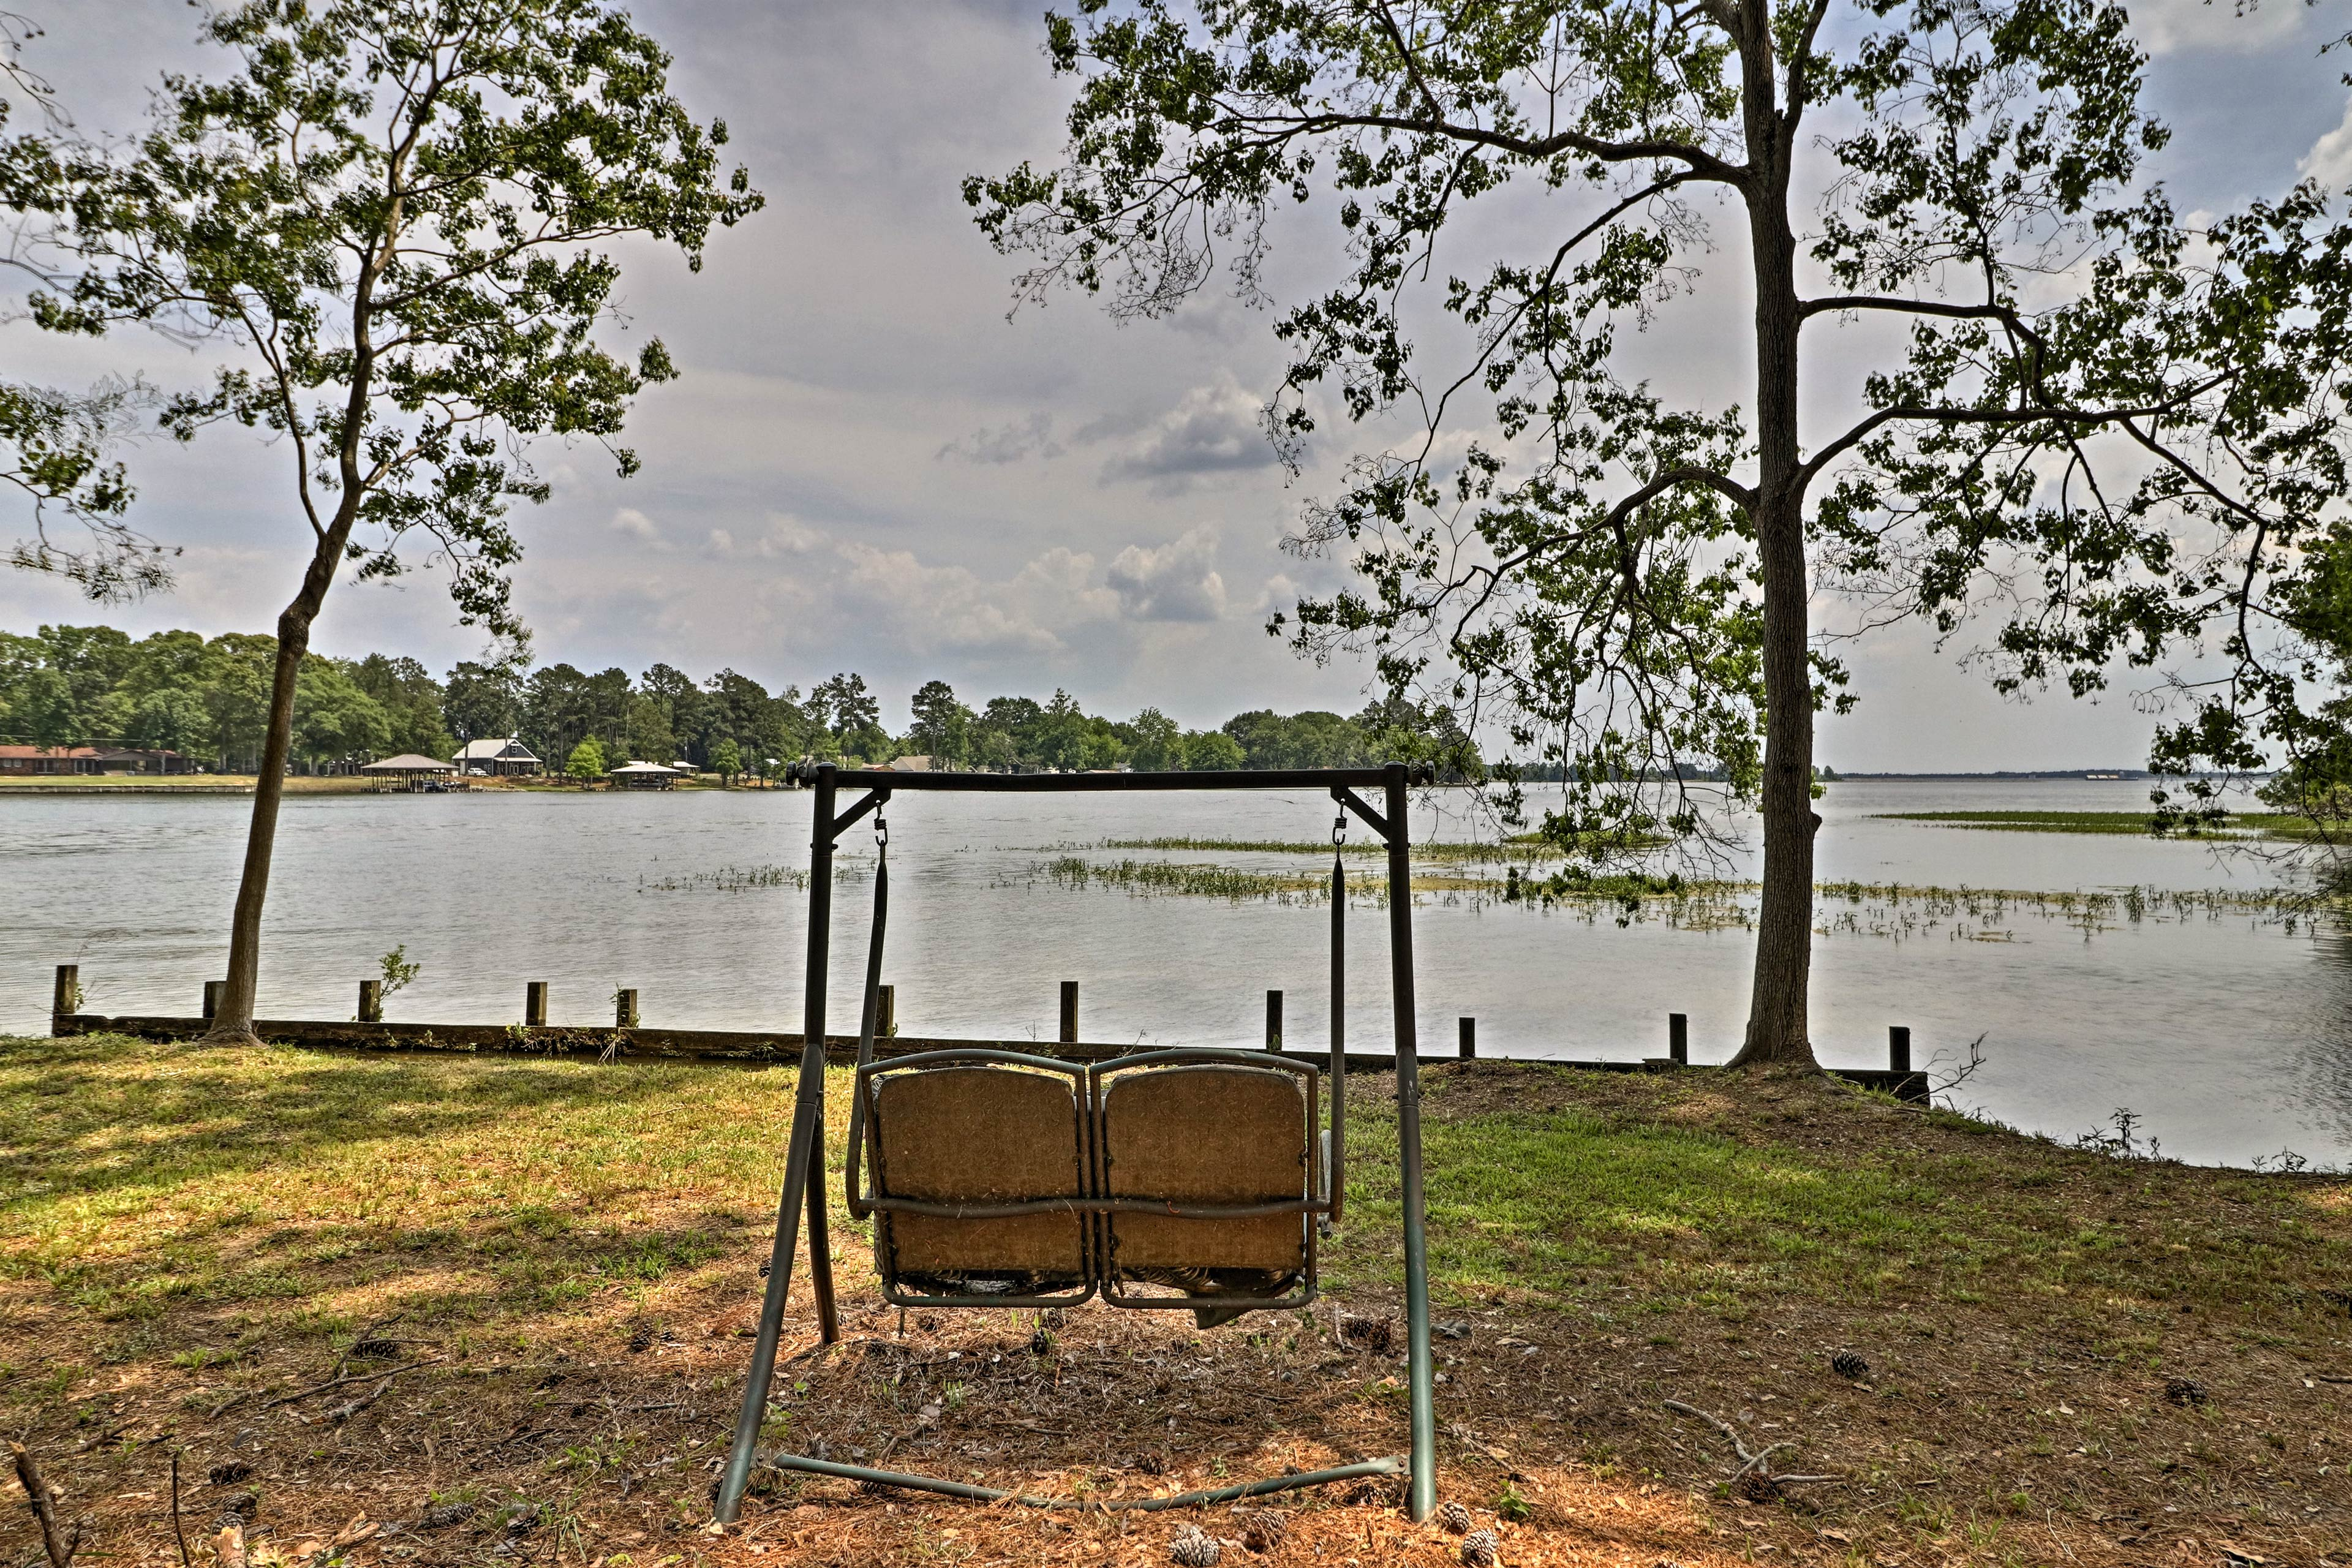 Slip away with your loved one for a romantic moment on the waterfront swing.